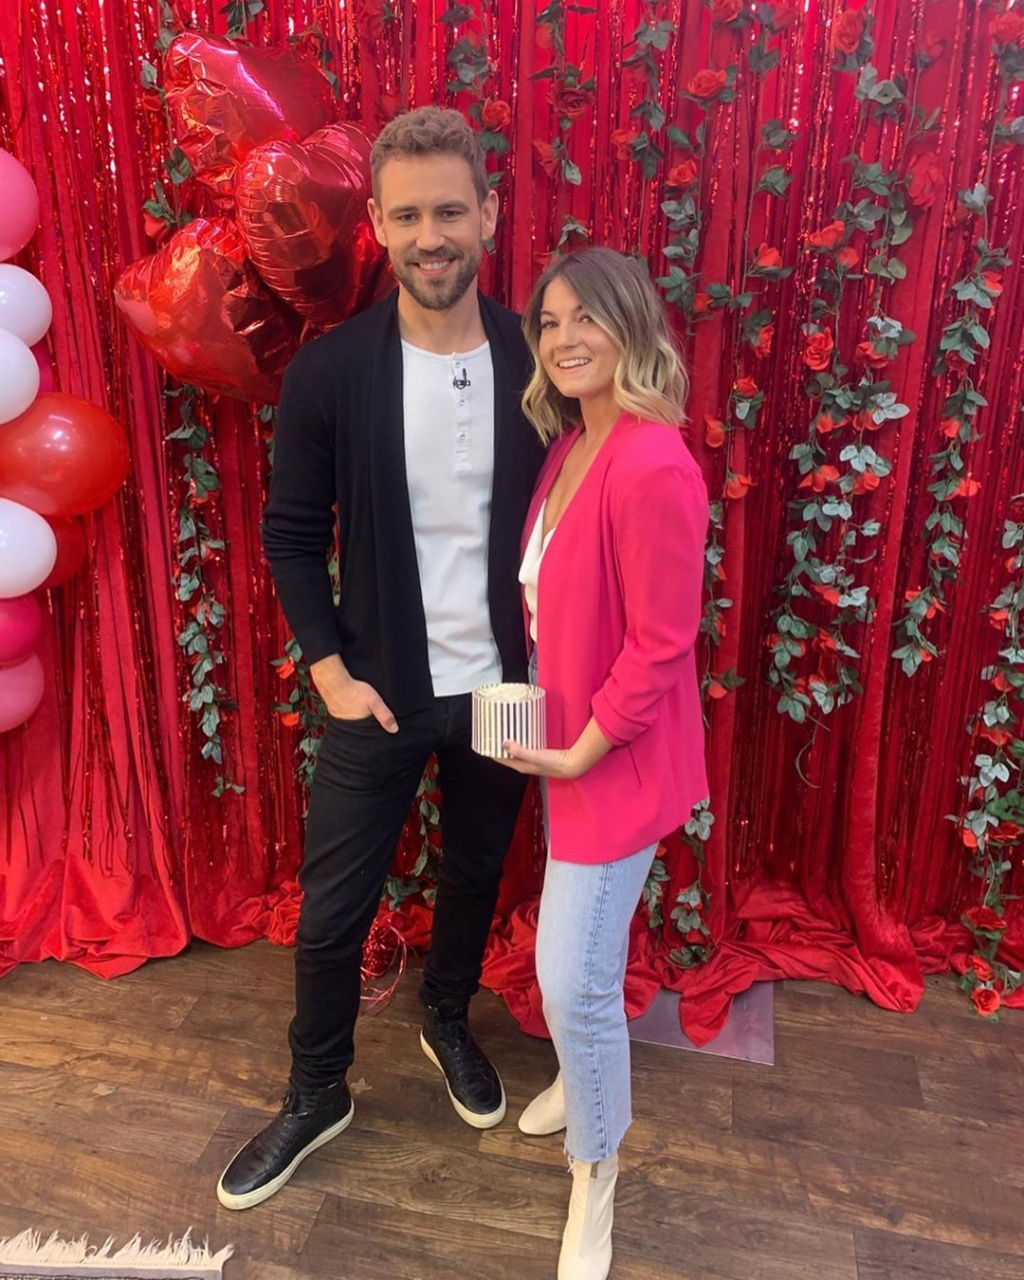 Nick Viall - Bachelor 21 - FAN Forum - Discussion #27 - Page 71 84481911